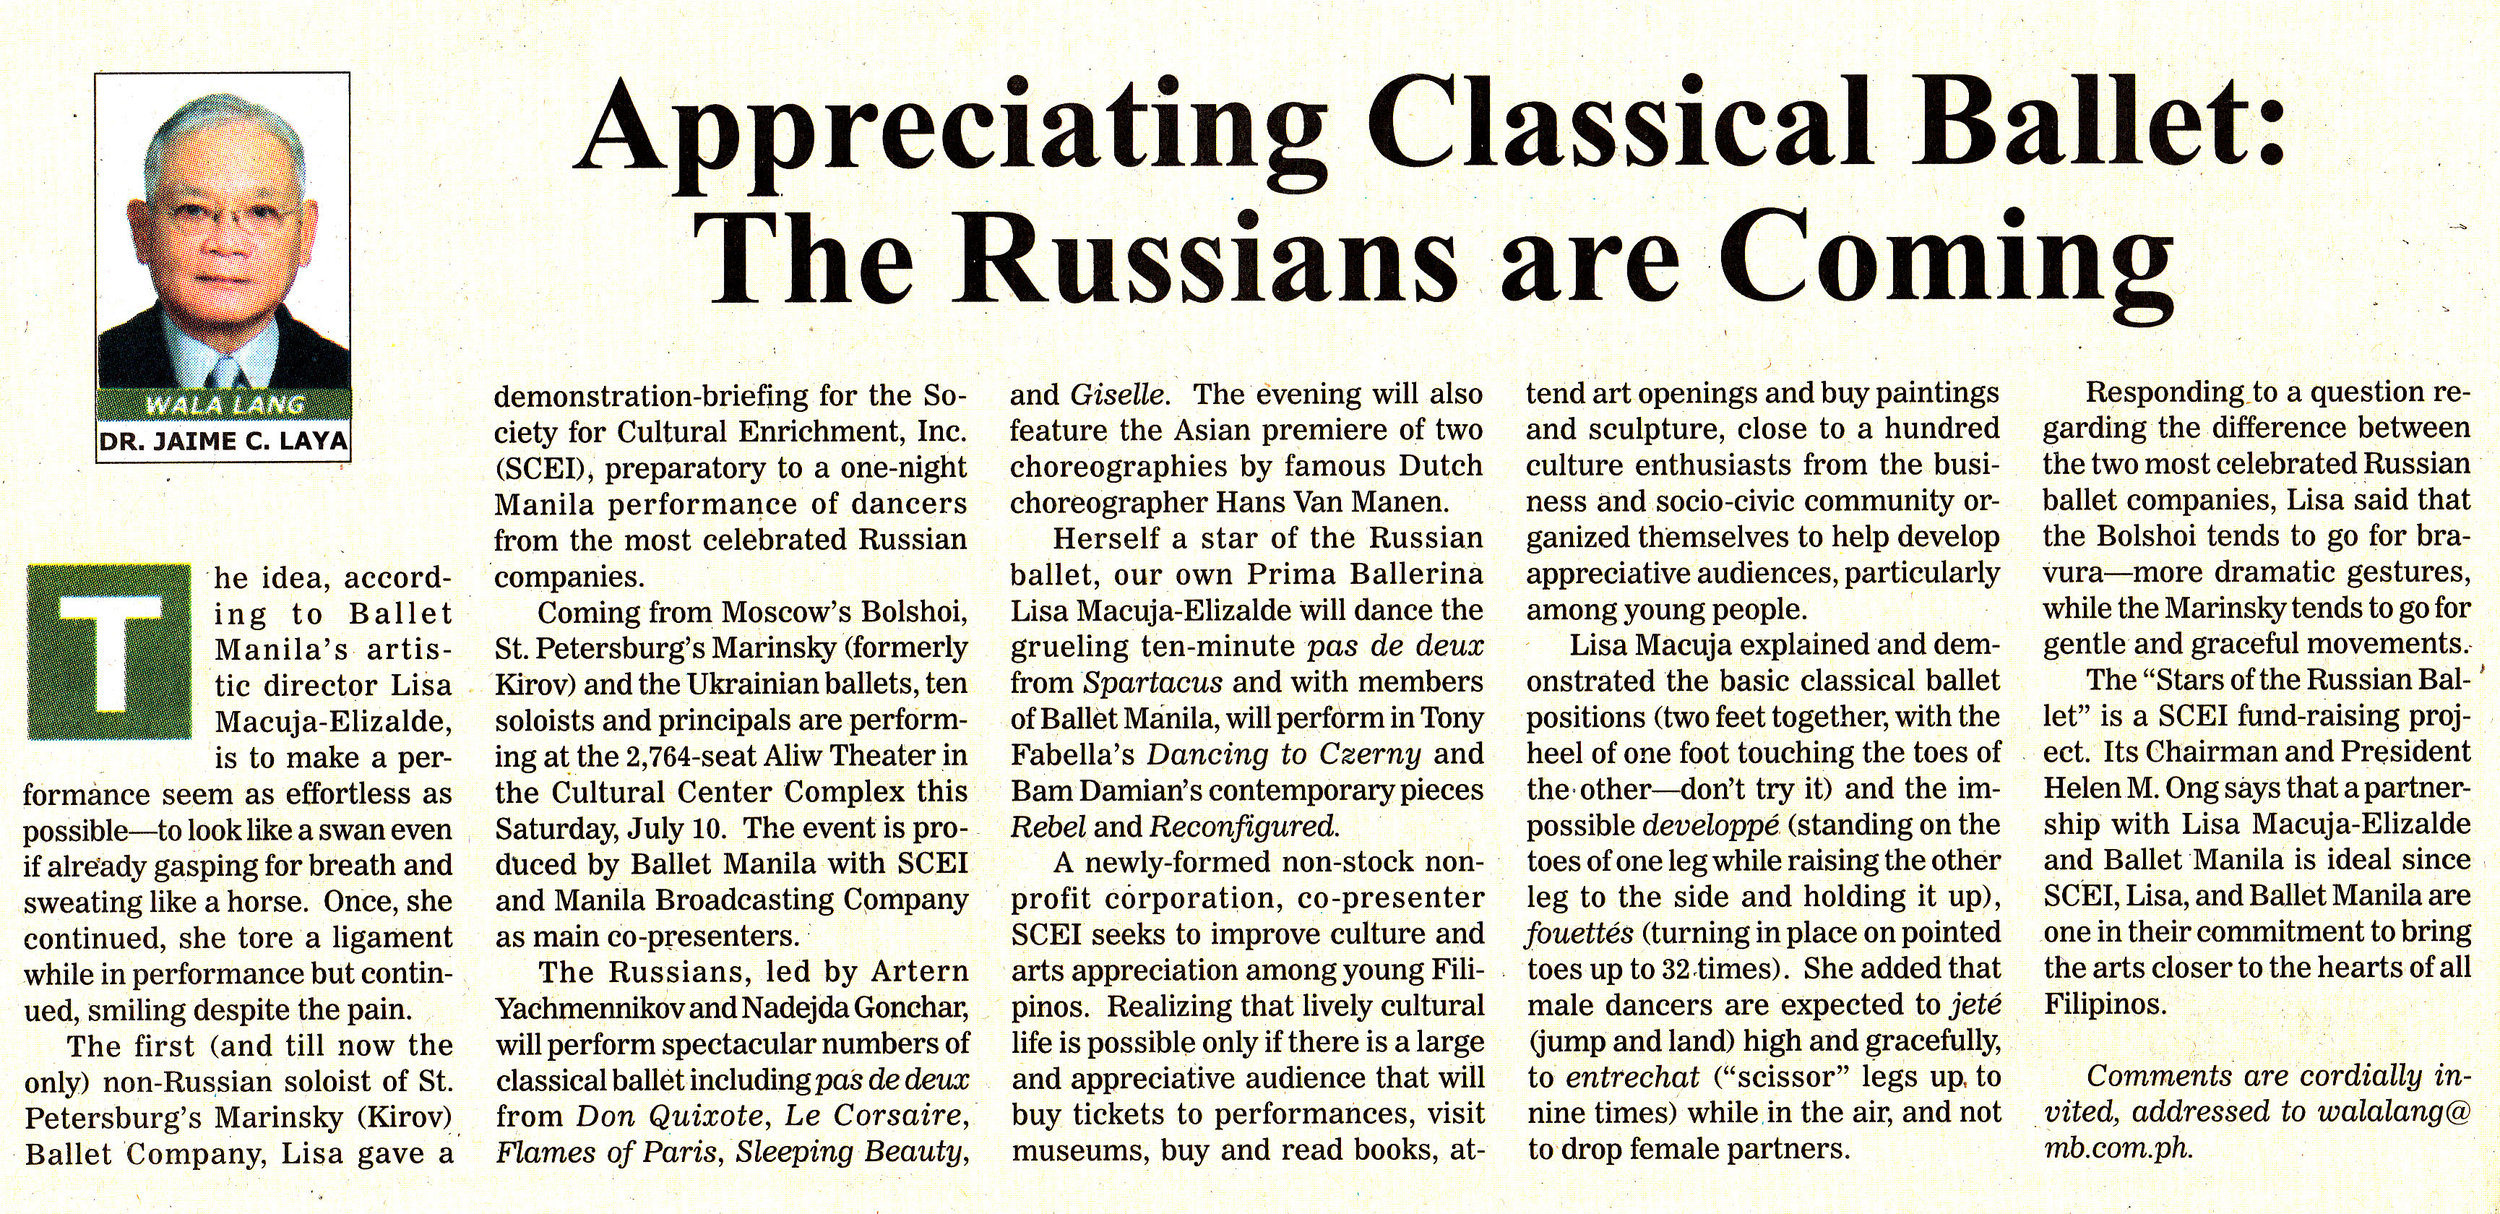 Jaime Laya writes about his group, the newly formed Society for Cultural Enrichment, co-presenting    Today's Stars of the Russian Ballet    in his column in Manila Bulletin. Clipping from the Ballet Manila Archives collection